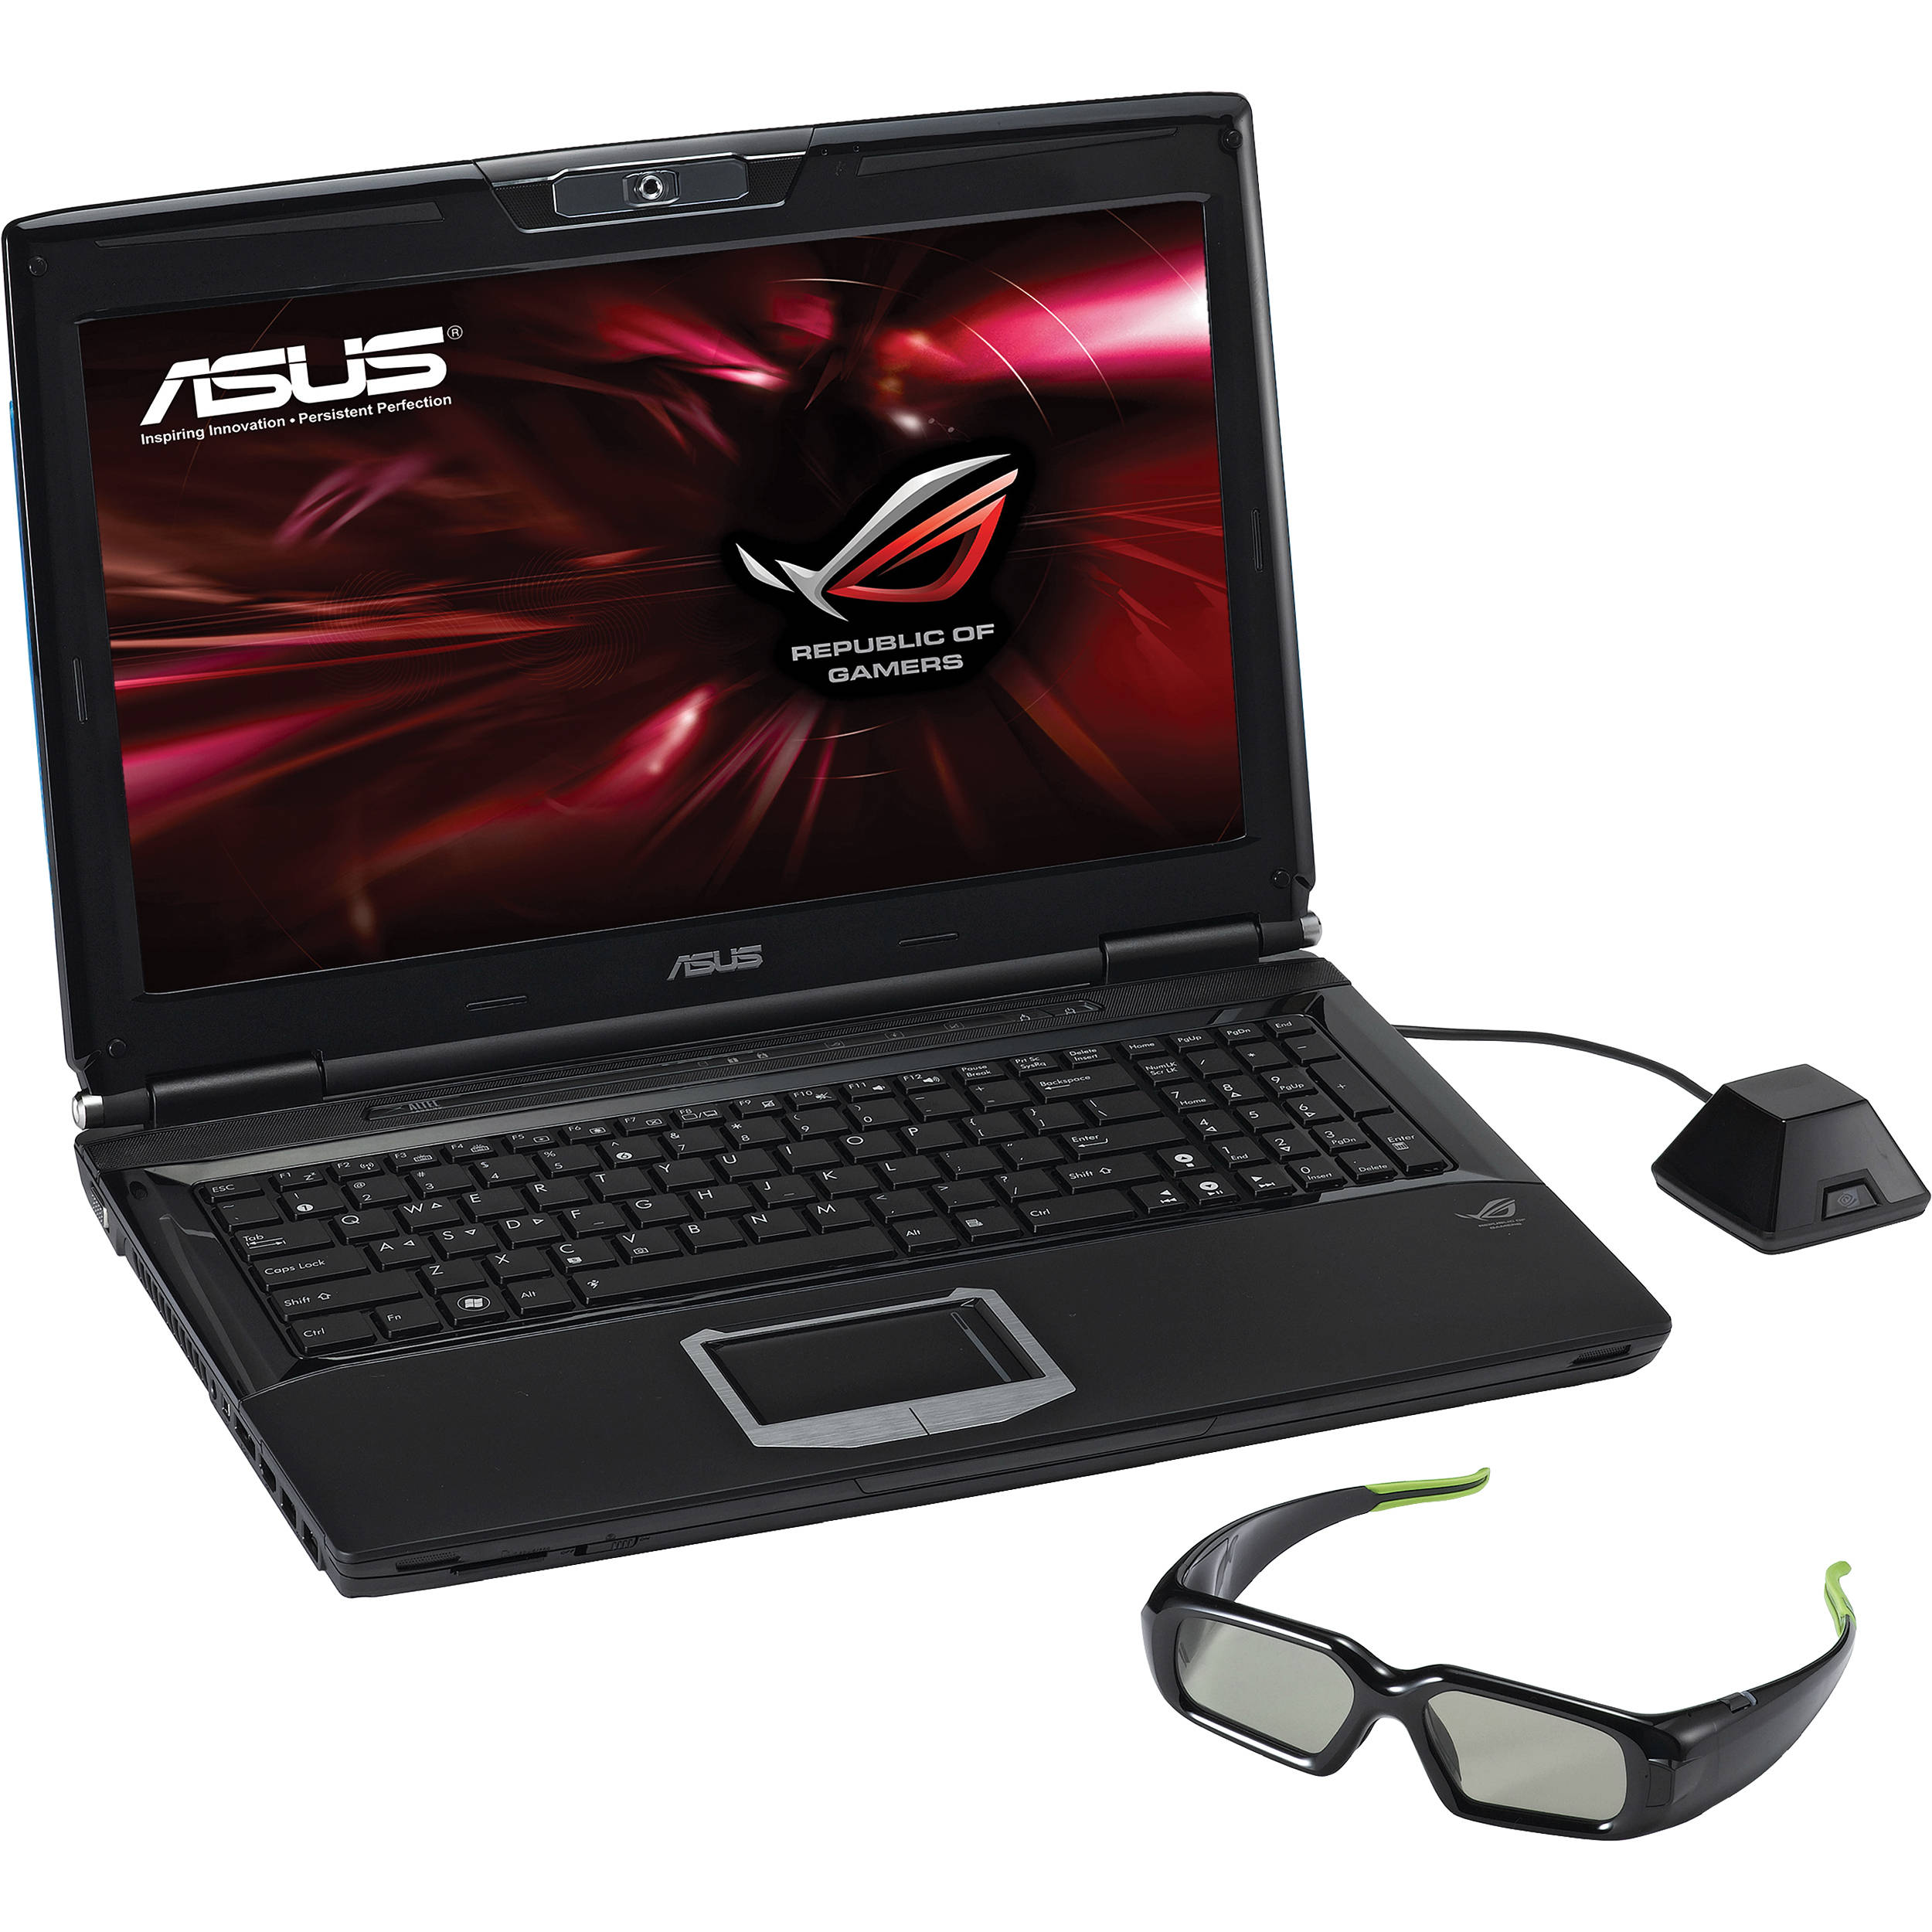 Download Drivers: Asus G51J 3D Notebook